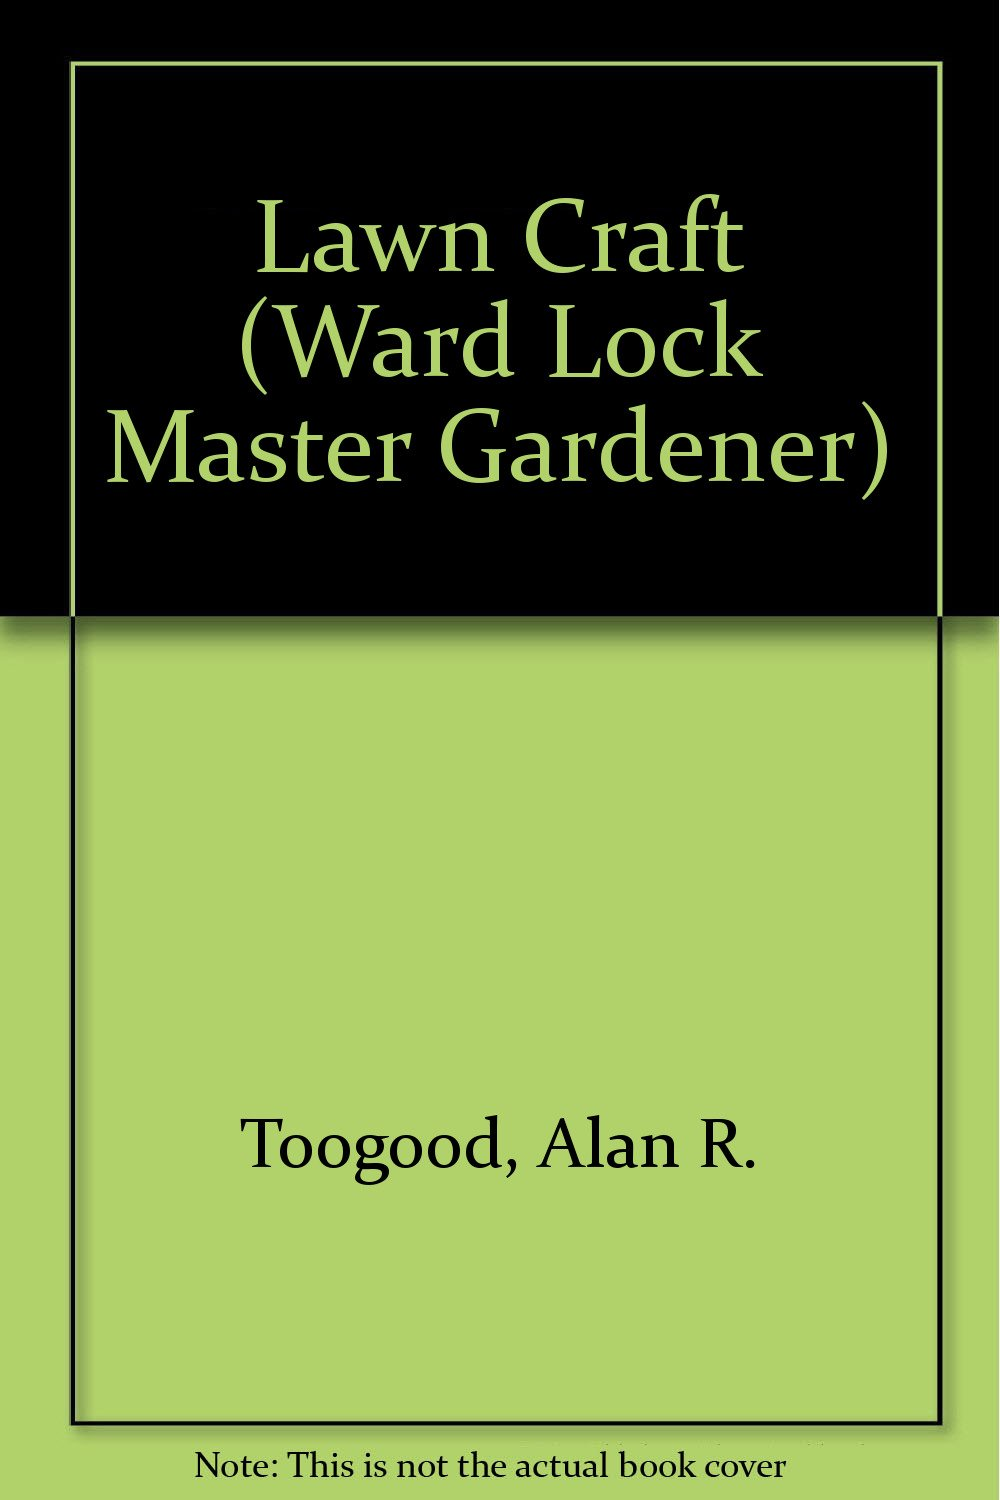 lawn-craft-ward-lock-master-gardener-series